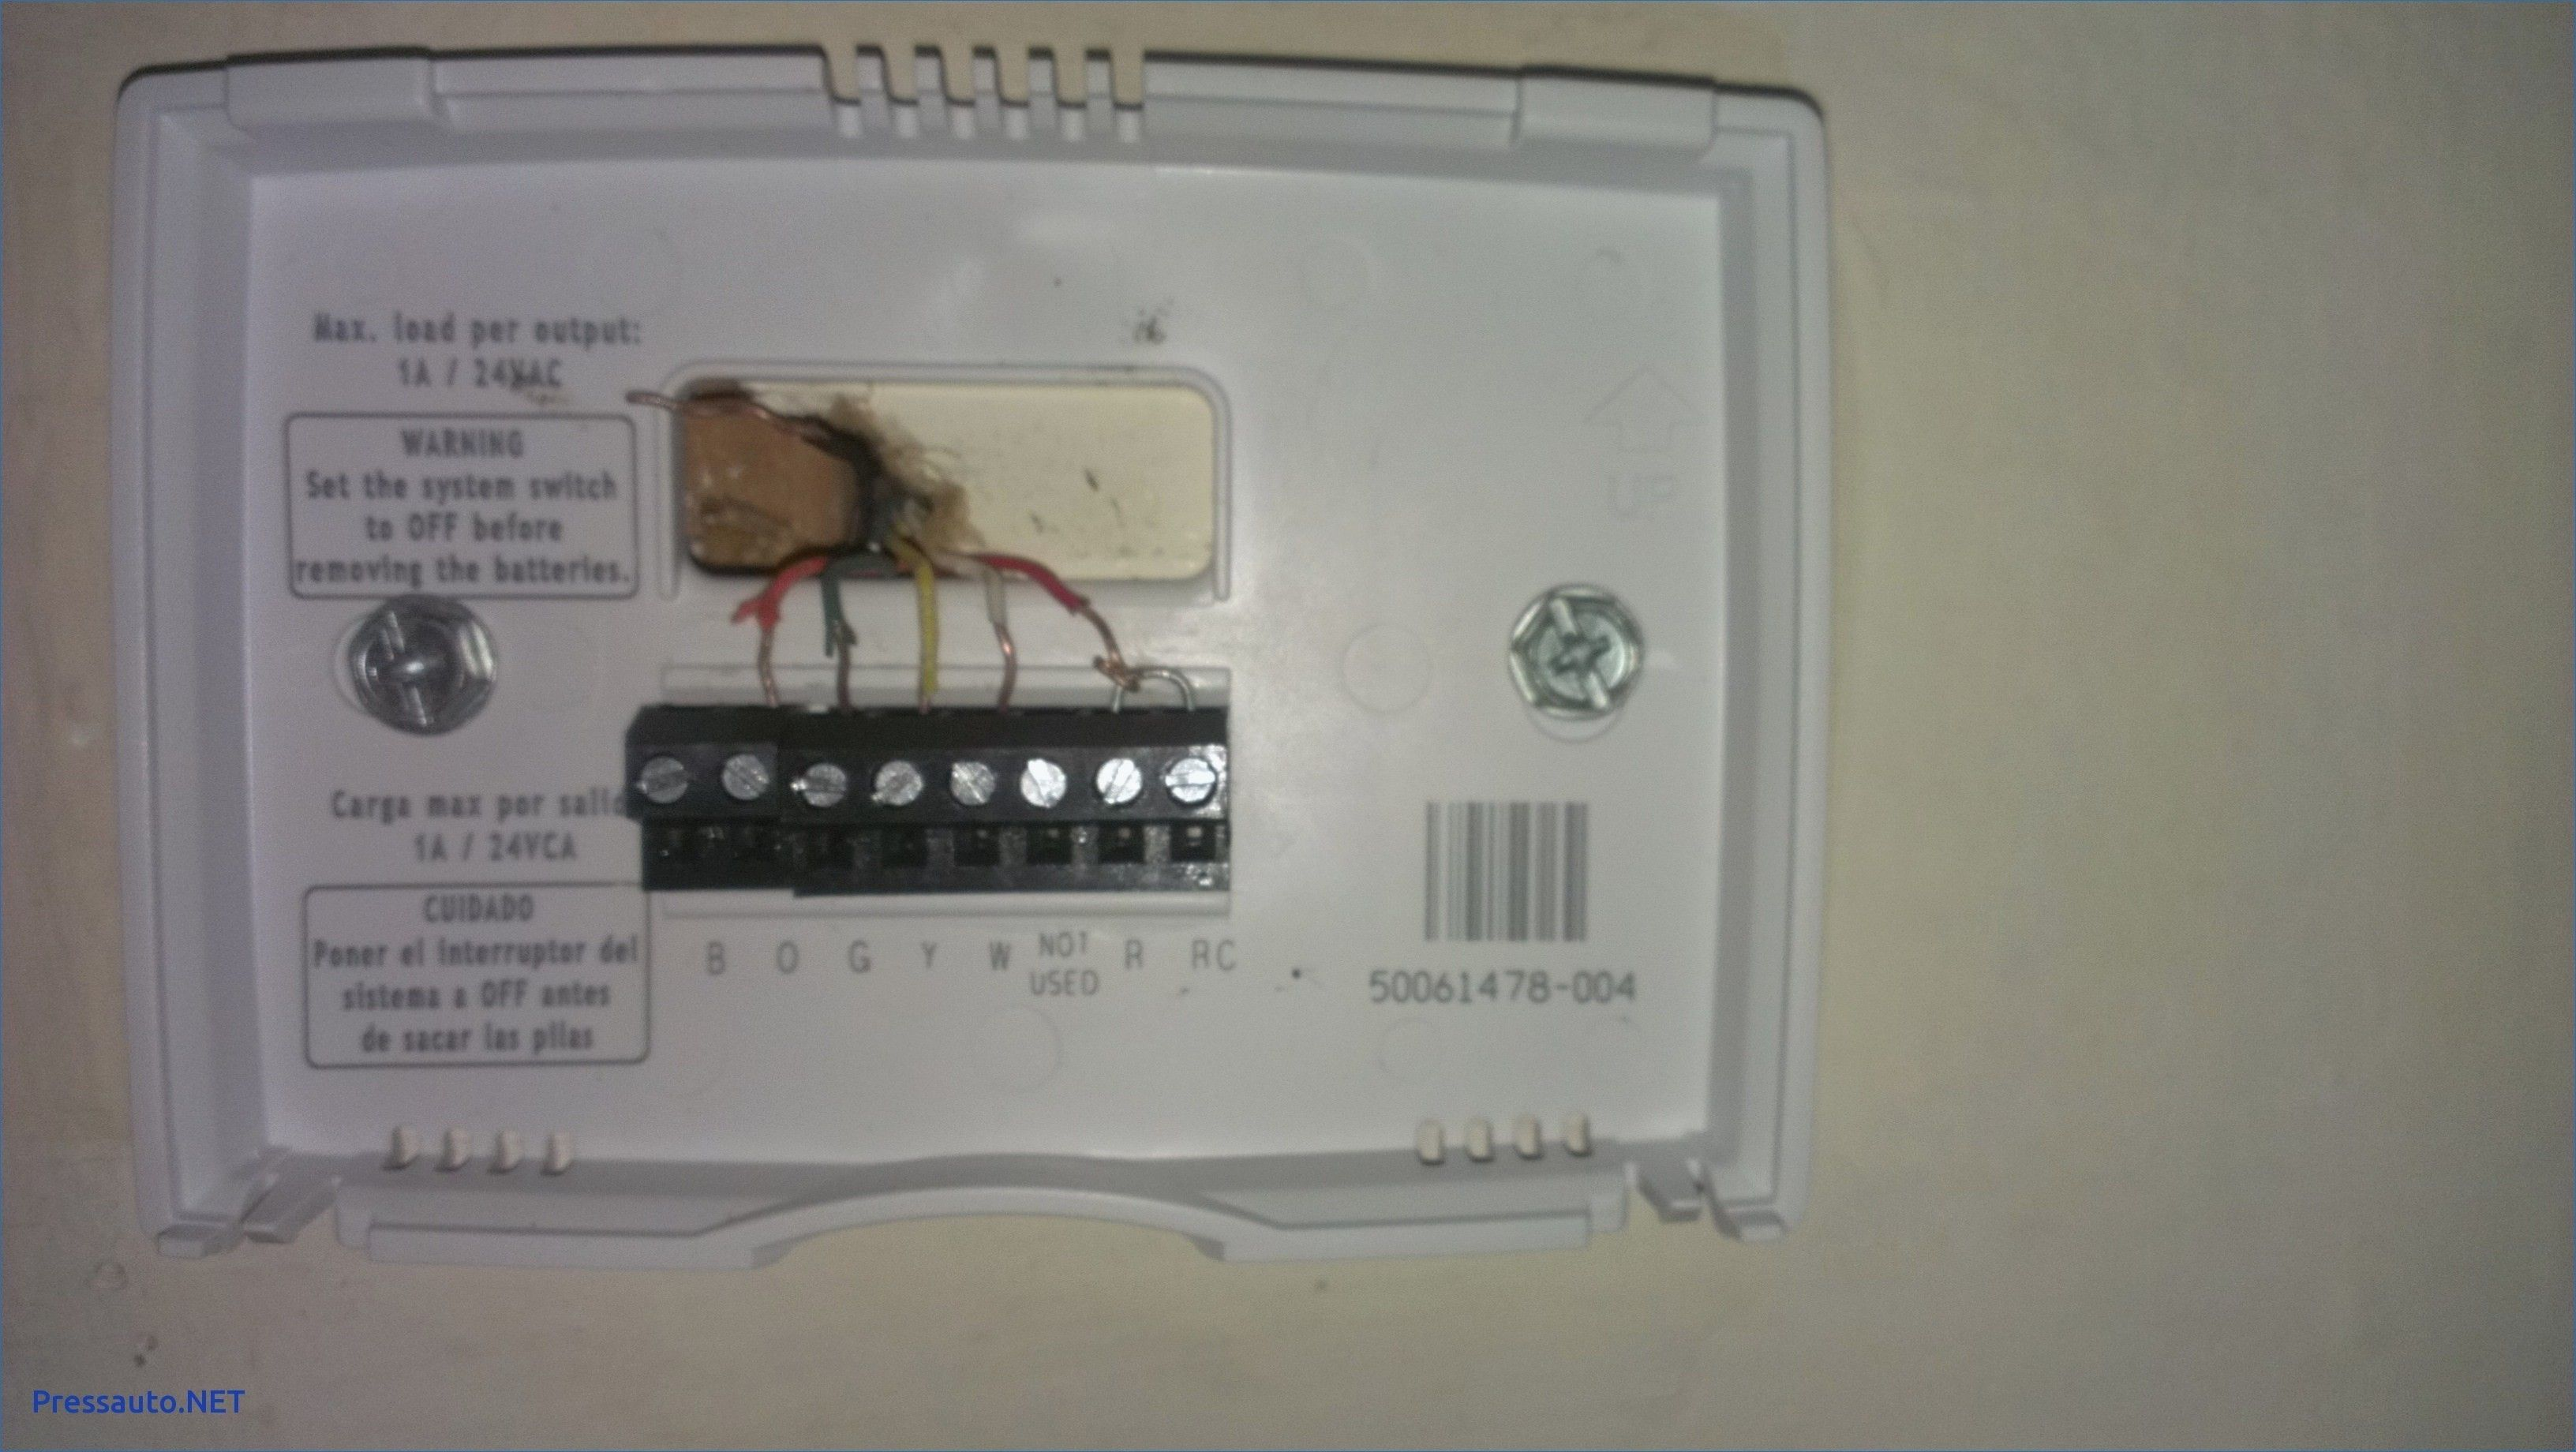 honeywell rth2310 wiring diagram. new honeywell thermostat rth2310 wiring  diagram diagram. honeywell thermostat rth2310b wiring diagram popular. honeywell  thermostat rth2310b wiring diagram practical. honeywell thermostat rth2310  user guide. 13 top ...  2002-acura-tl-radio.info